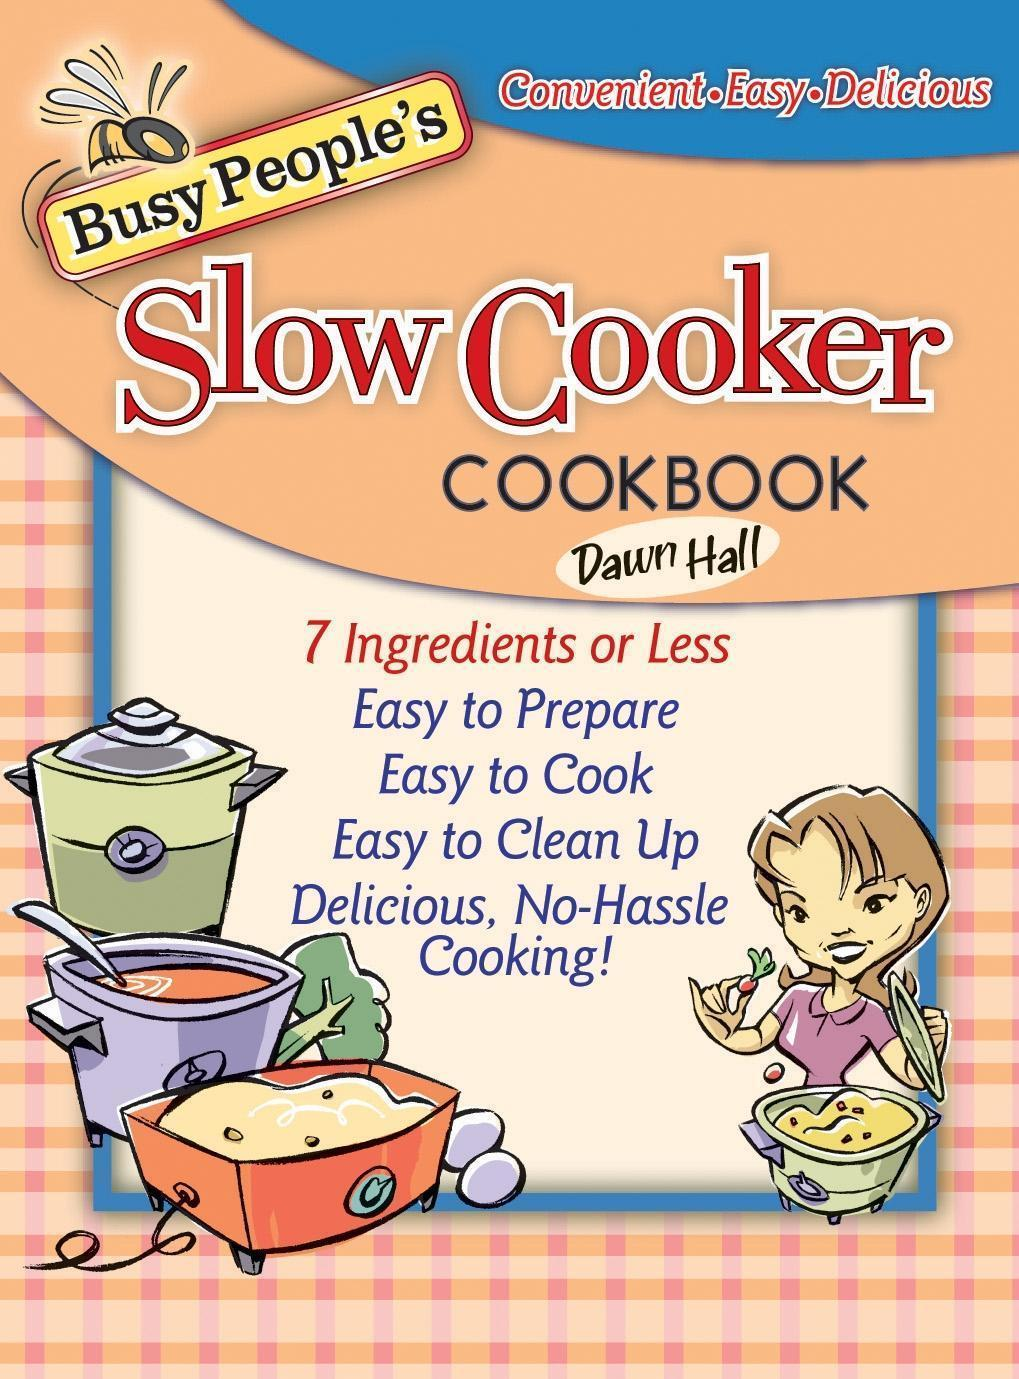 Busy People's Slow Cooker Cookbook